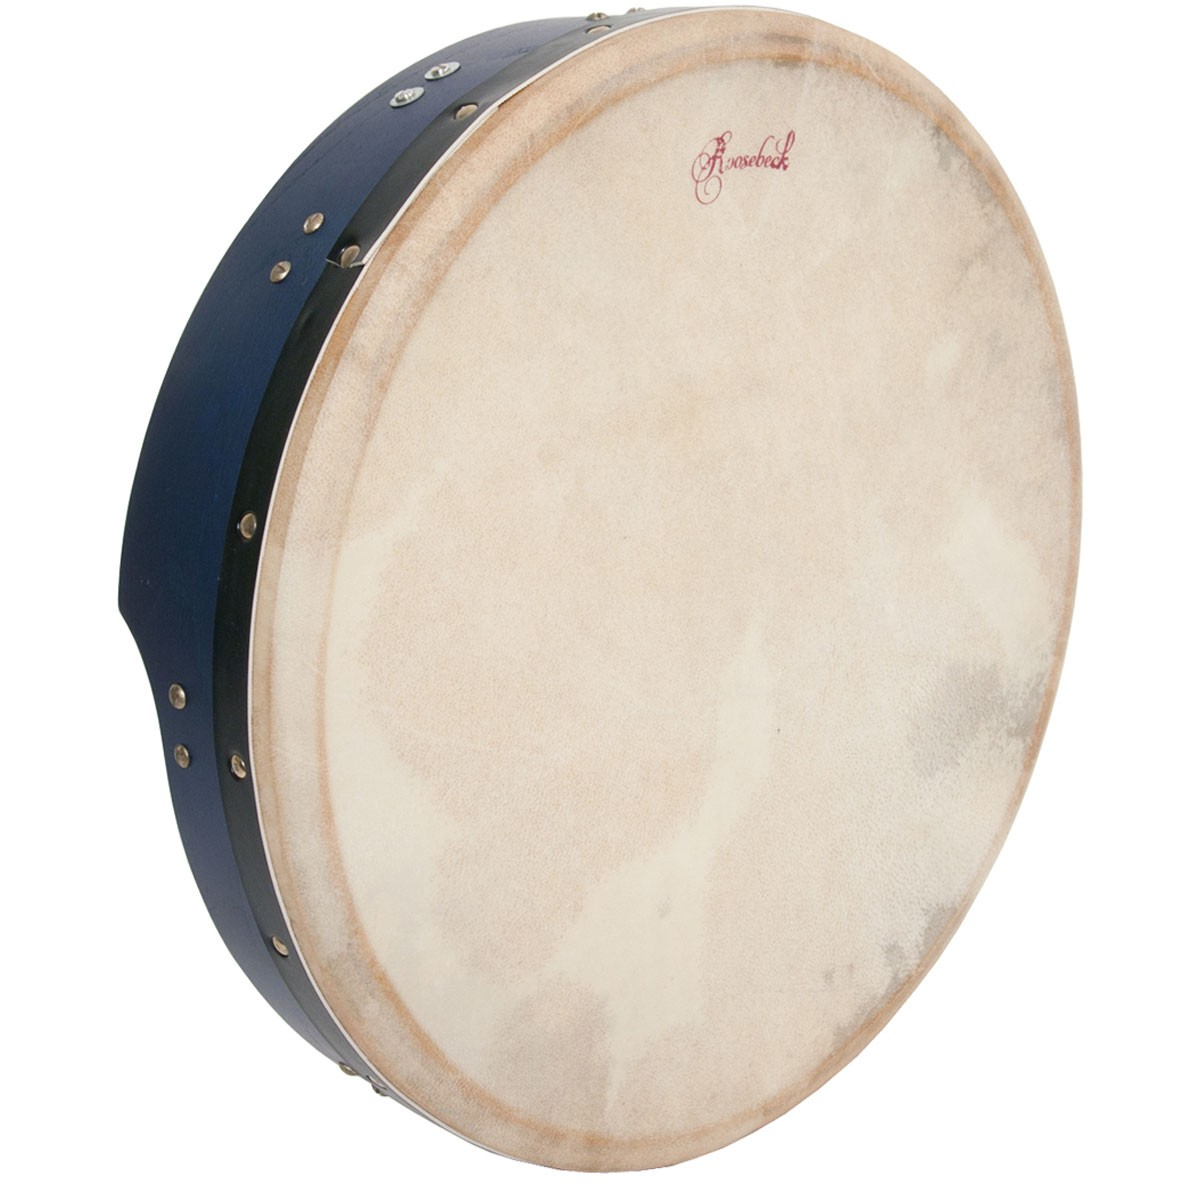 Roosebeck Tunable Mulberry Bodhran T-Bar 16'x3.5' - Blue